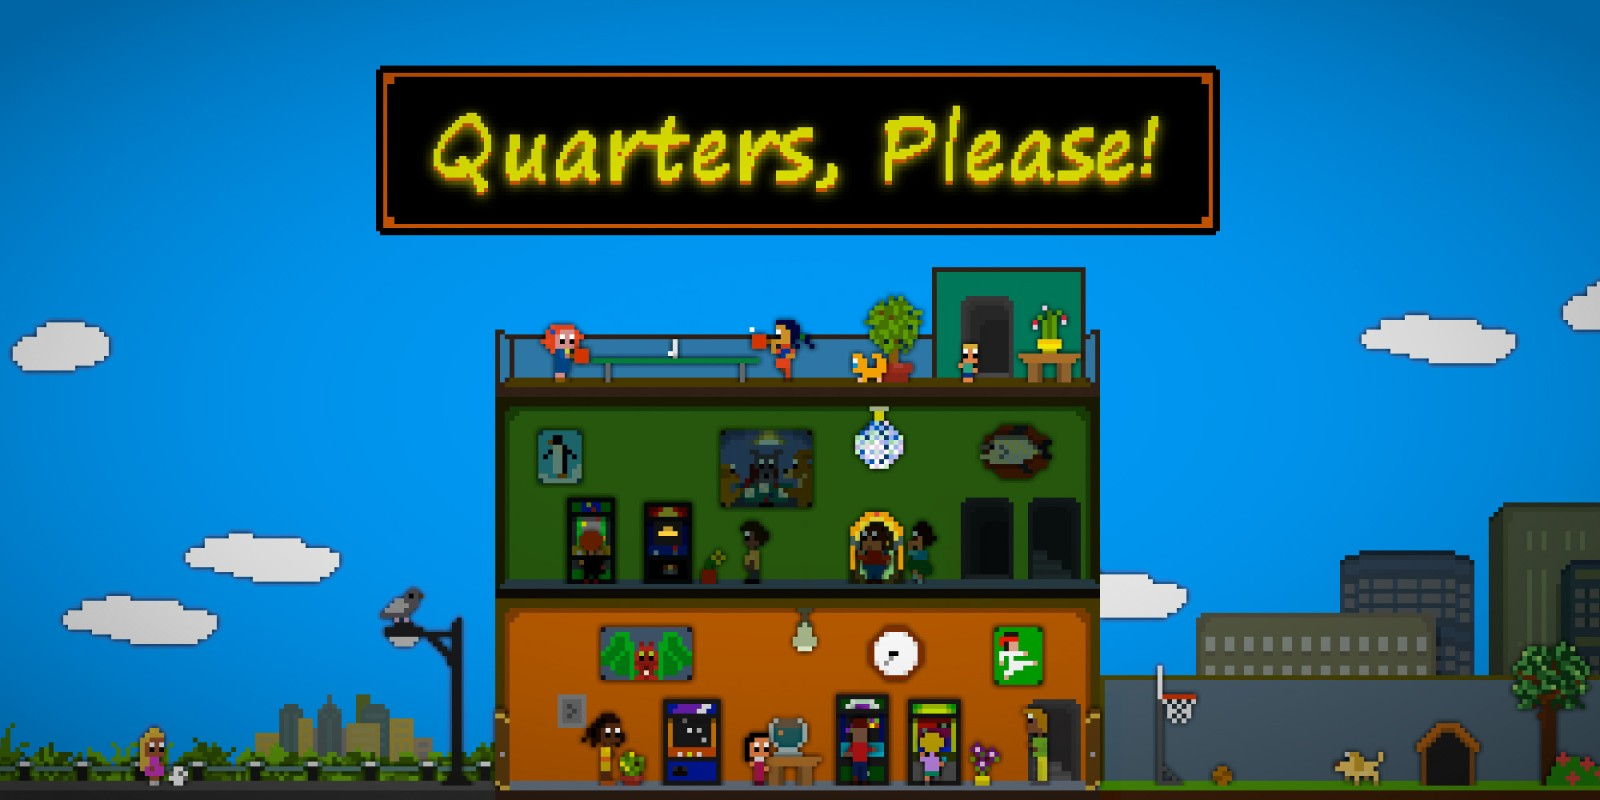 Quarters, Please!